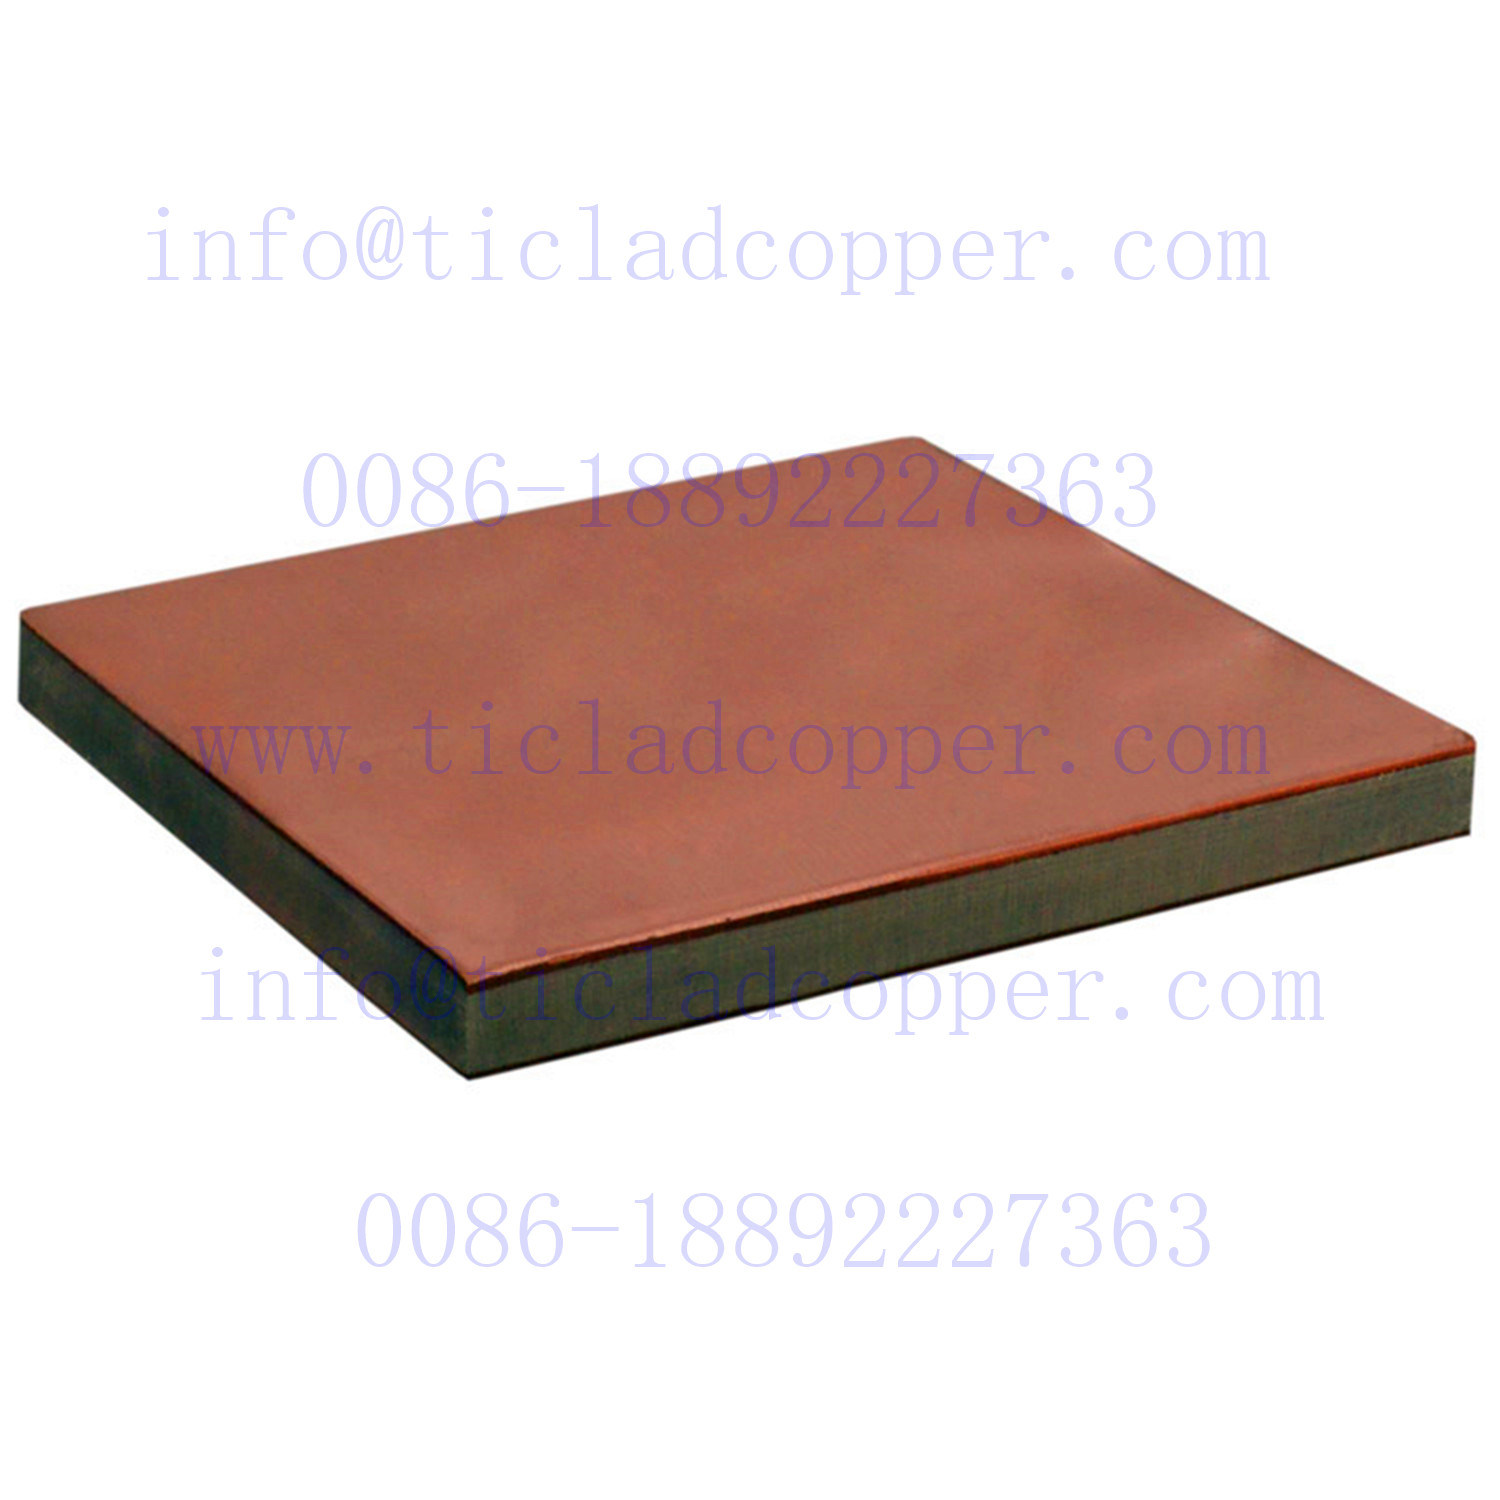 Explosion Bonding/ Metallurgical Bond Gr2 Titanium Clad Copper Plate Sheet for Surface Treatment